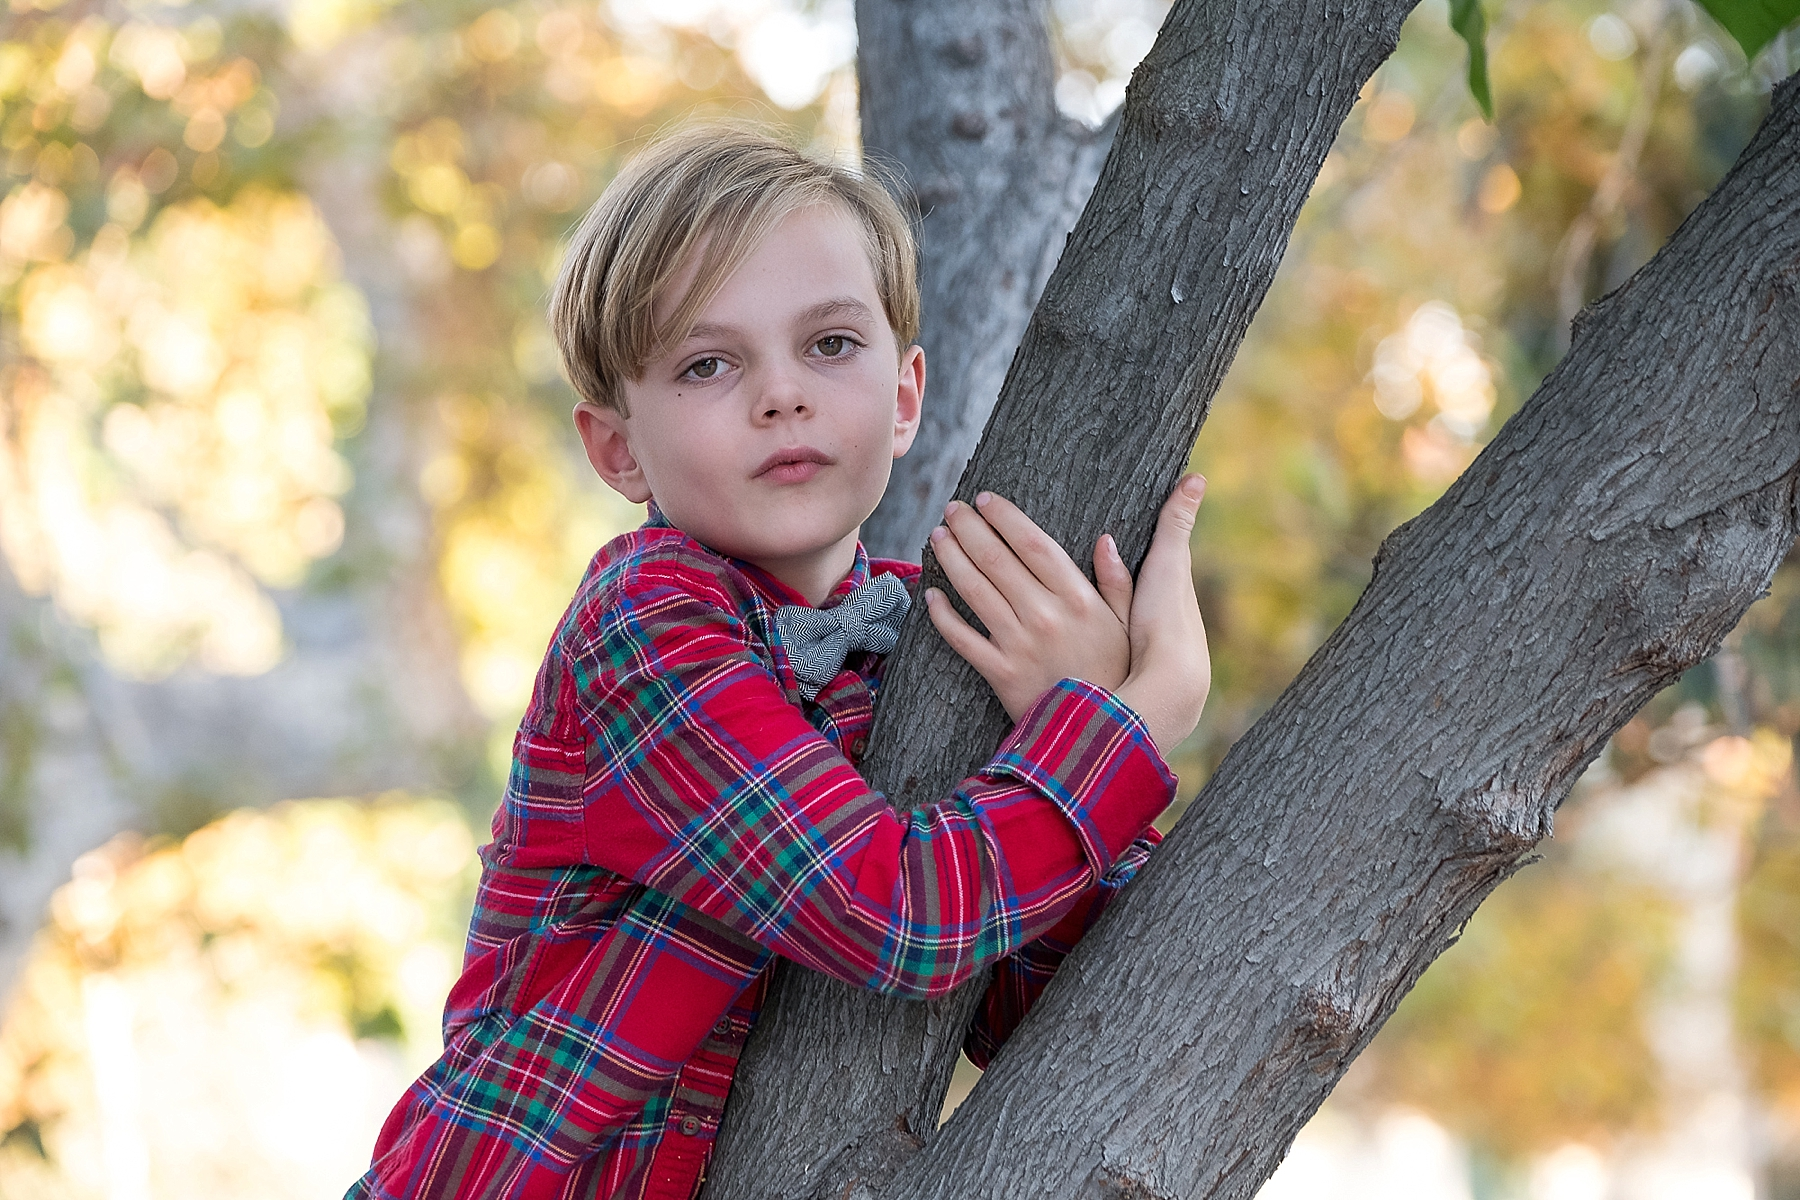 Individual and Family Photos in Claremont, CA